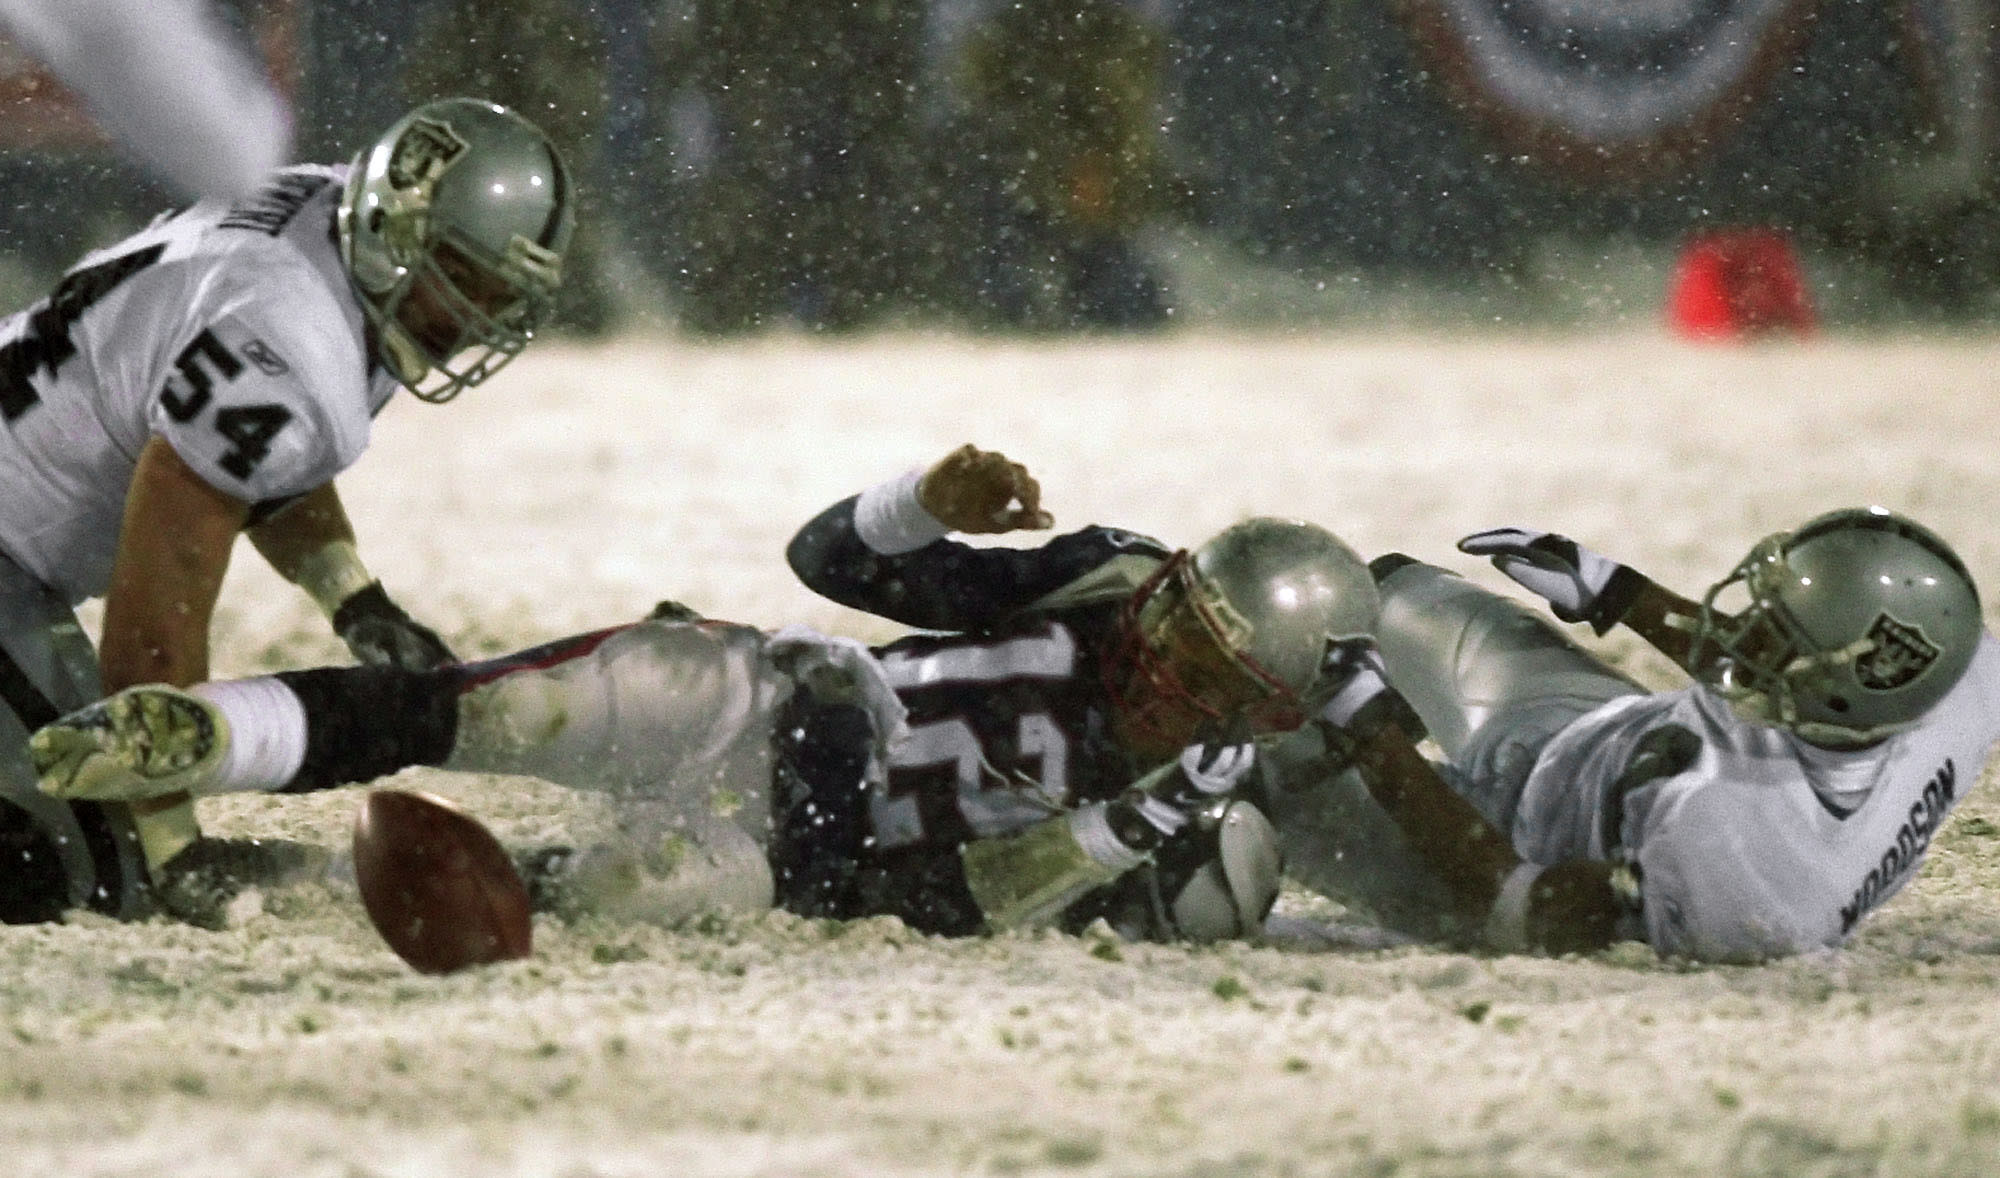 """File-New England Patriots quarterback Tom Brady (12) loses the ball after being brought down by Oakland Raiders' Charles Woodson, right, while Greg Biekert (54) moves to recover the ball in the fourth quarter of their AFC Division Playoff game in Foxboro, Mass. Saturday night, Jan. 19, 2002. The play was appealed, and the Patriots retained possession. Raiders coach Jon Gruden says opening this season at Carolina and then playing New Orleans on made him feel like he was in a time warp. His nostalgia is even more amplified this week against New England. It's been nearly two decades since he walked out of a snow-covered Foxboro Stadium on the wrong end of a 16-13 overtime loss to the Patriots in the infamous """"tuck rule"""" game during the 2001 playoffs. (AP Photo/Elise Amendola, File)"""